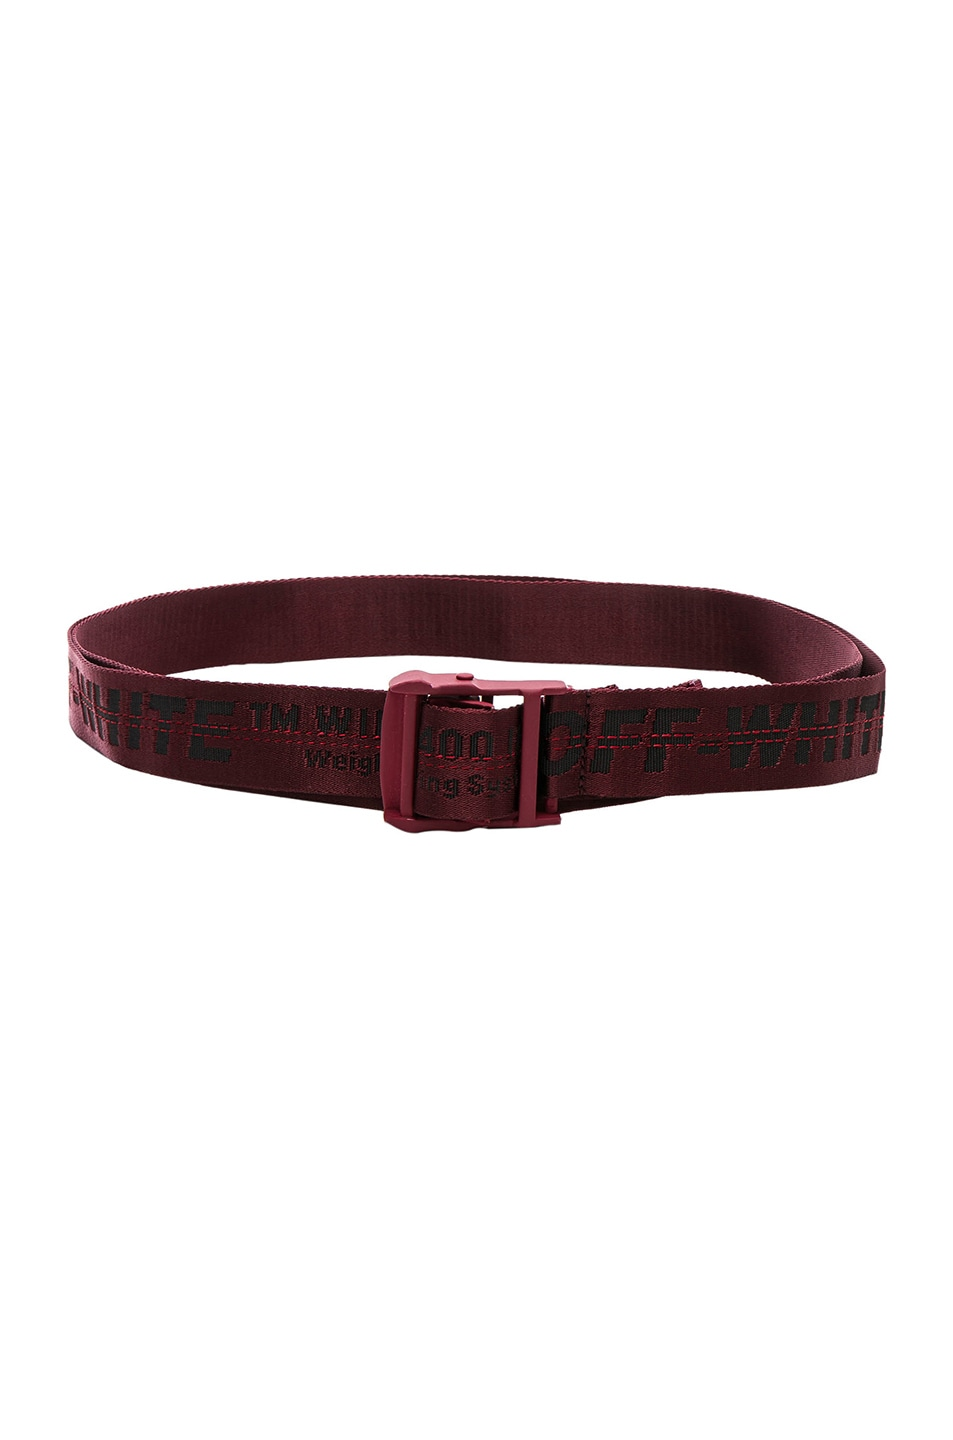 Off-White Belts OFF-WHITE CLASSIC INDUSTRIAL BELT IN RED